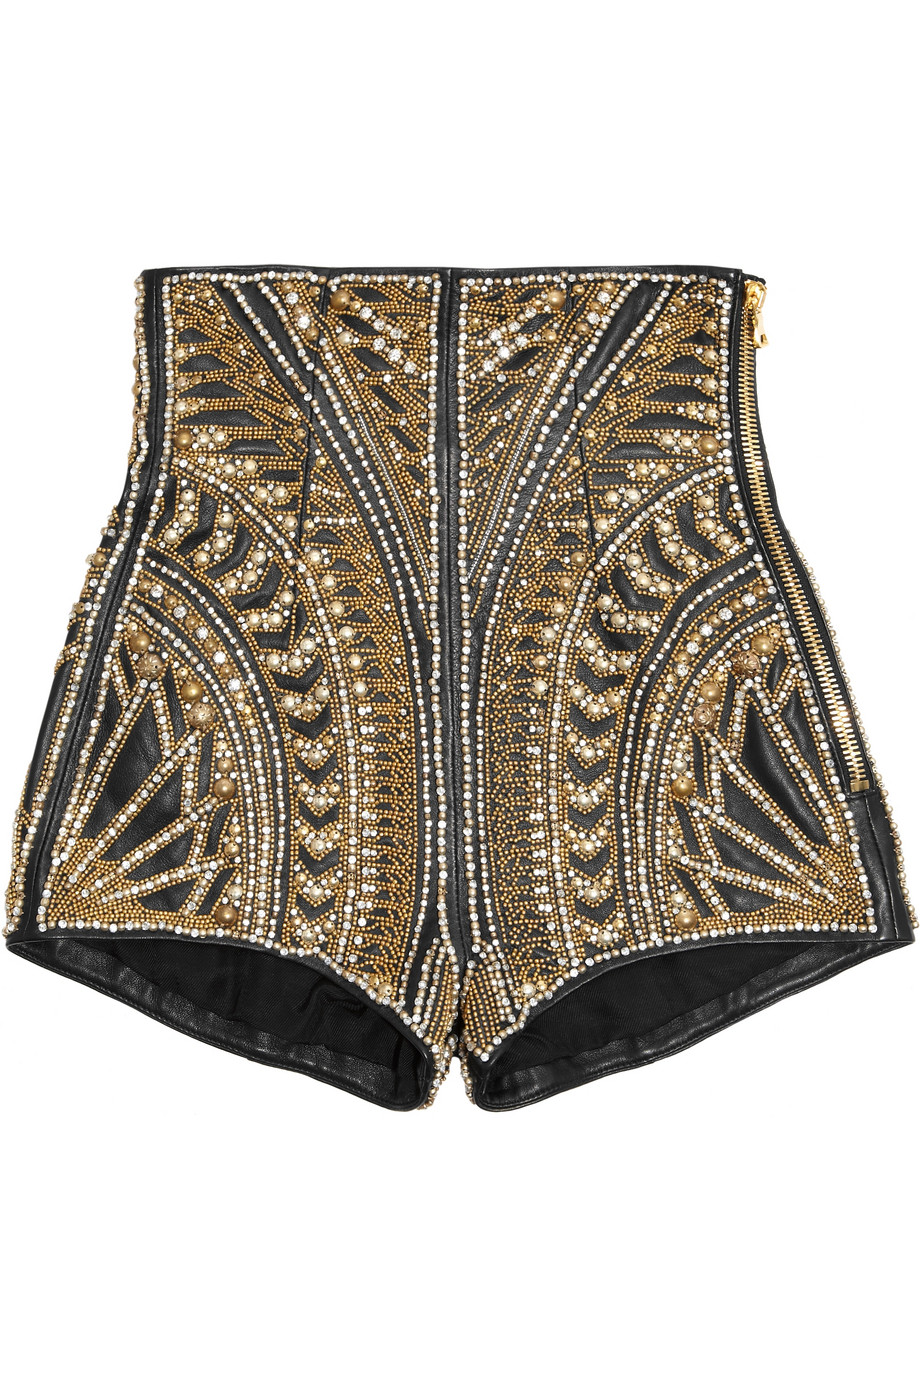 Embellished leather shorts | Balmain | 80% off | THE OUTNET